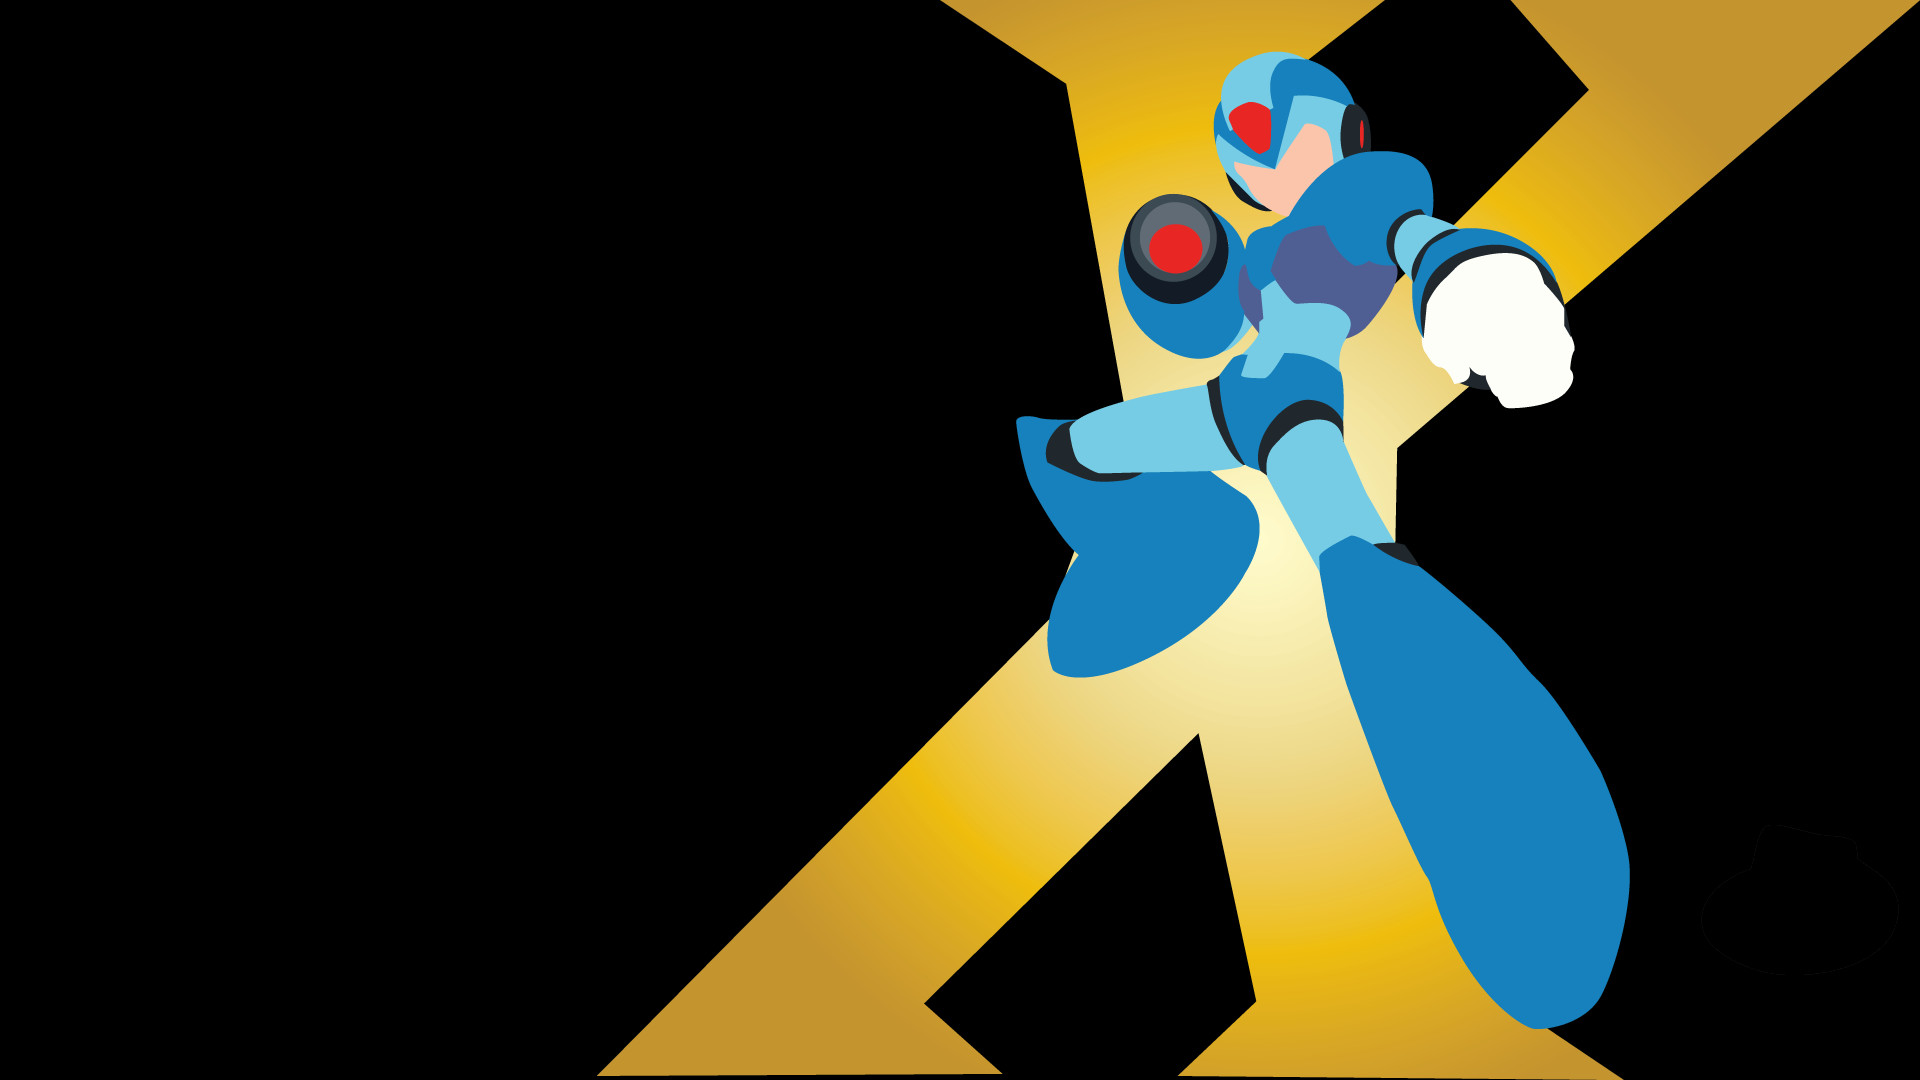 Explore More Wallpapers in the Mega Man X Subcategory!